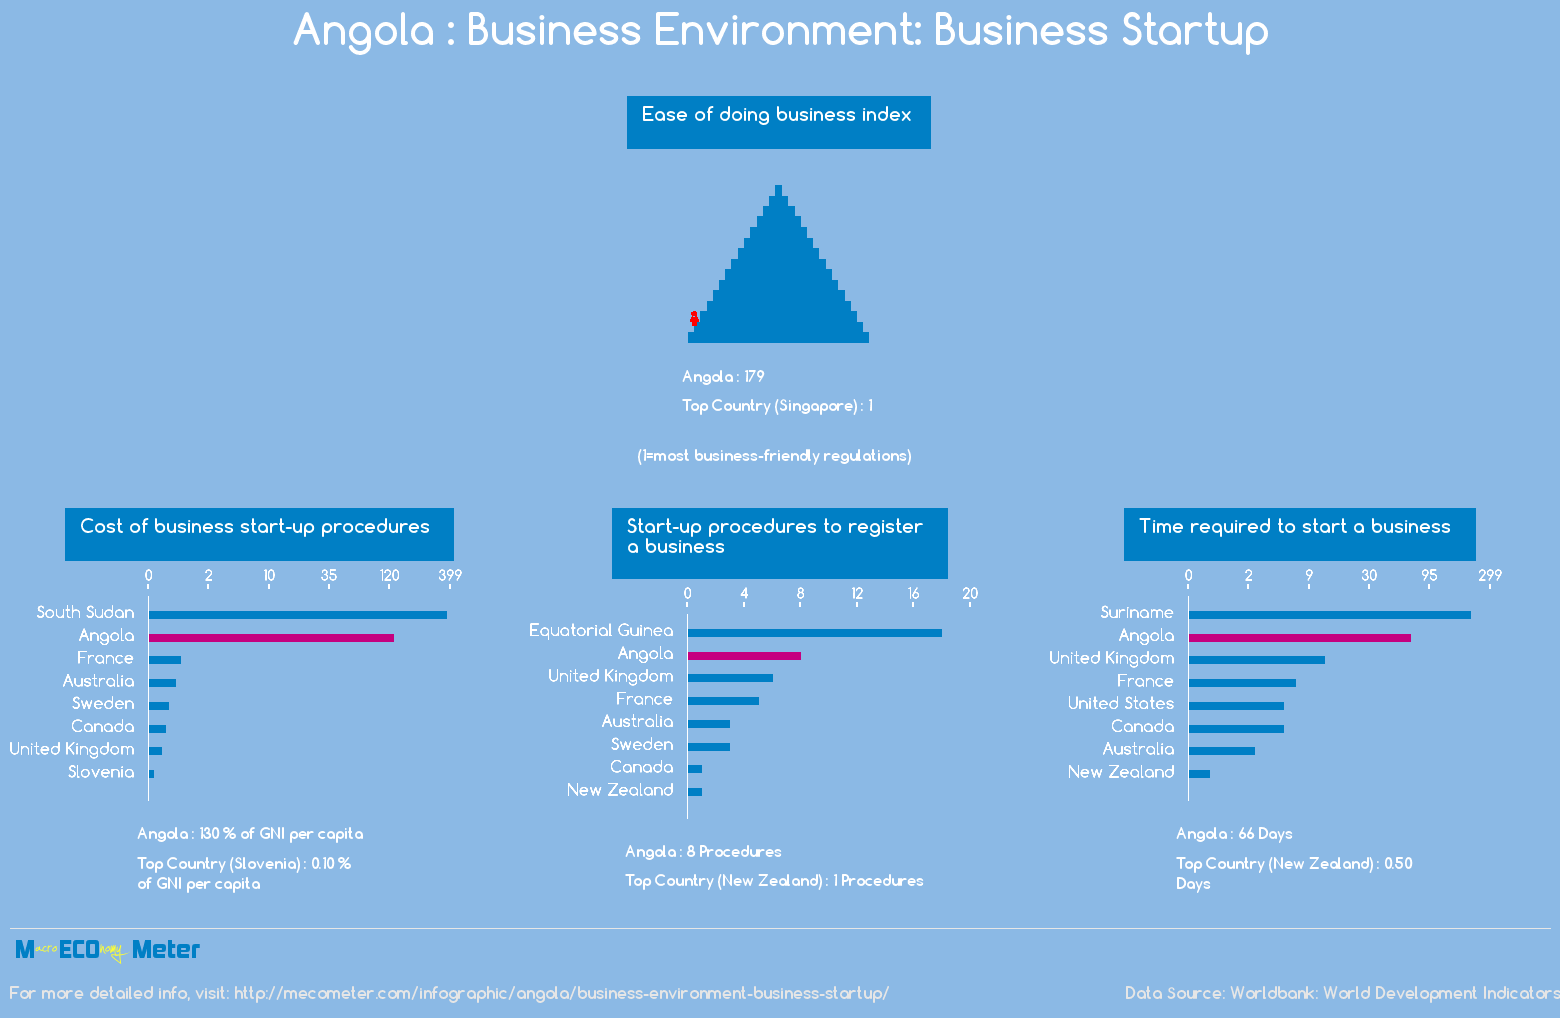 Angola : Business Environment: Business Startup